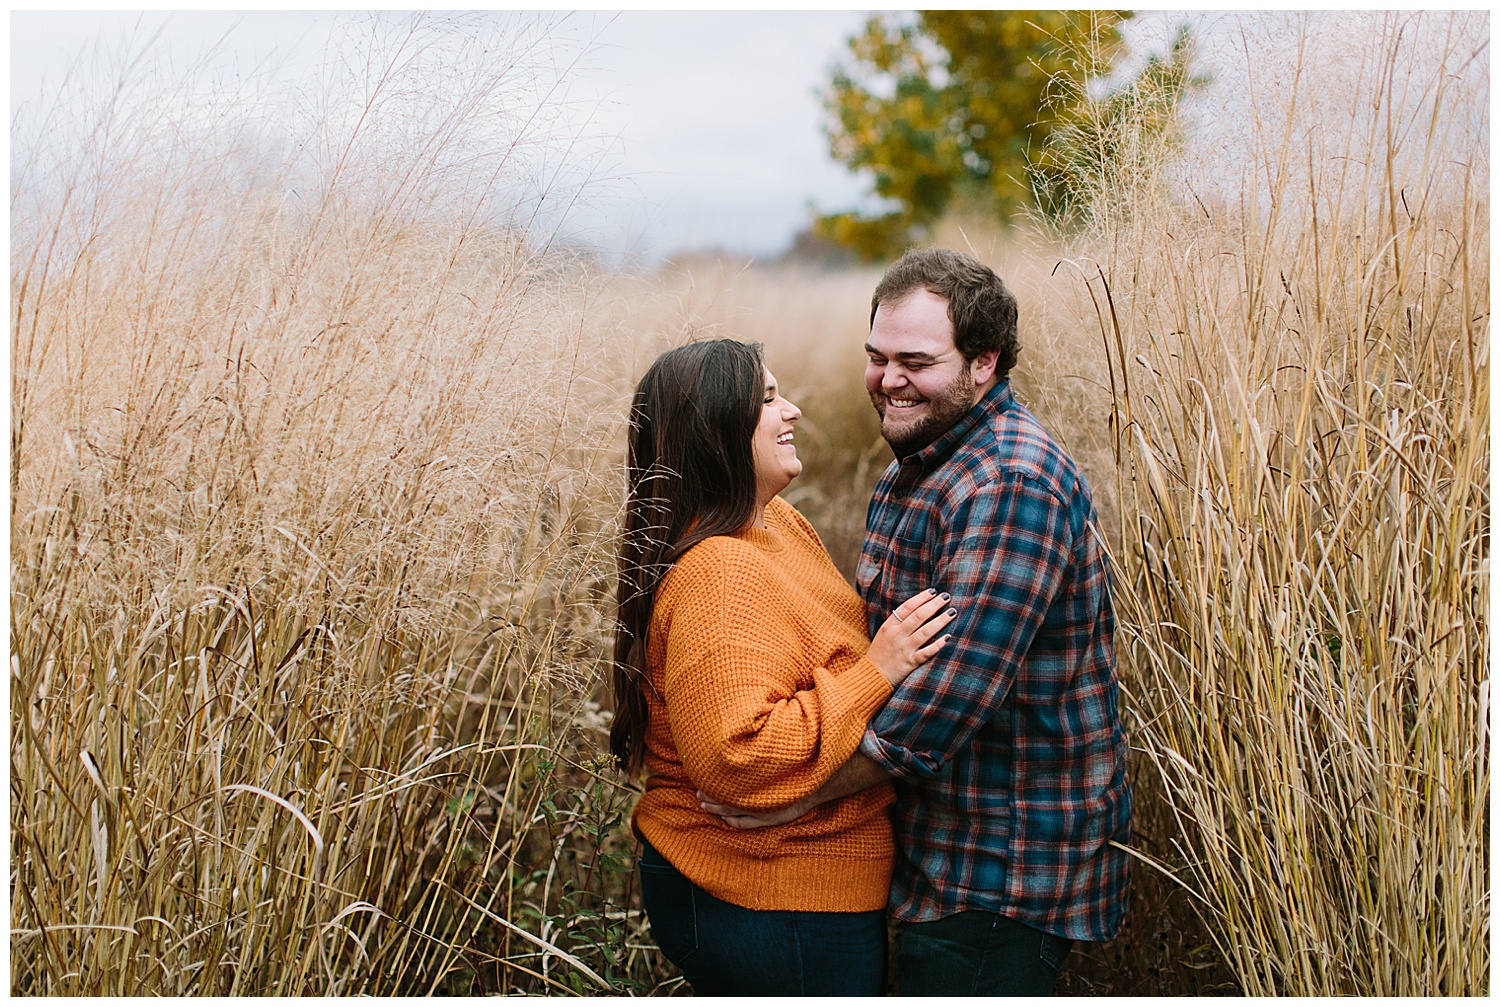 trent.and.kendra.photography.beckley.creek.park-25.jpg